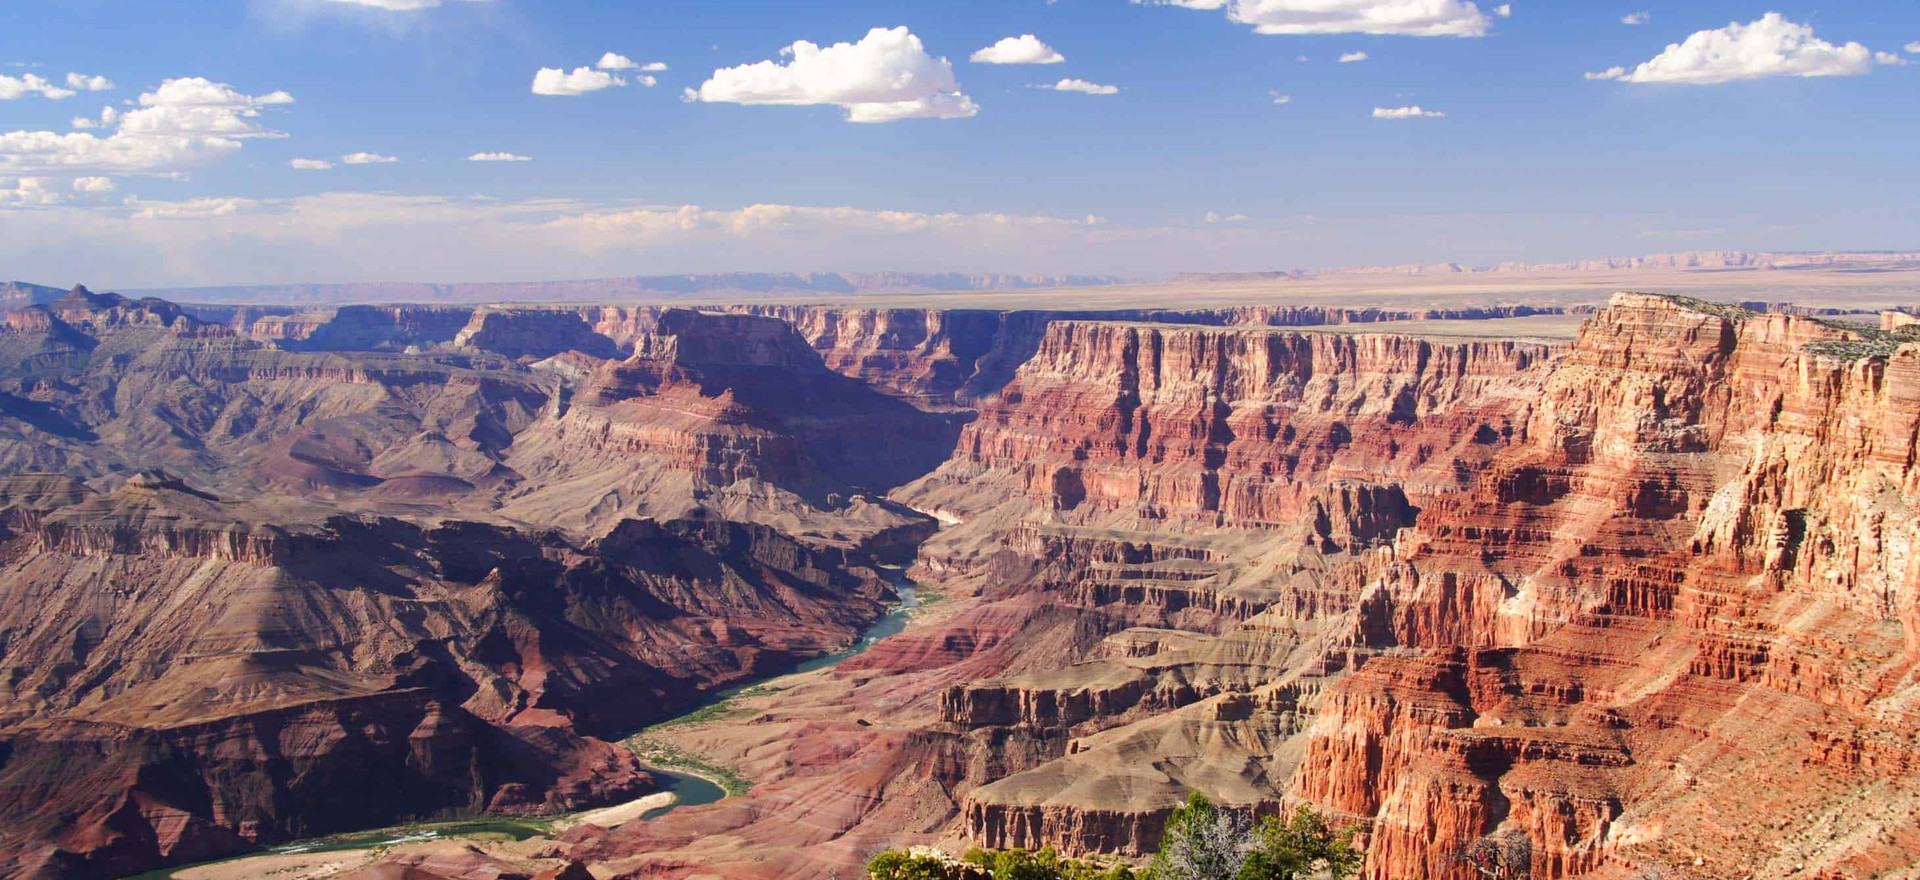 Great Trains and Grand Canyons